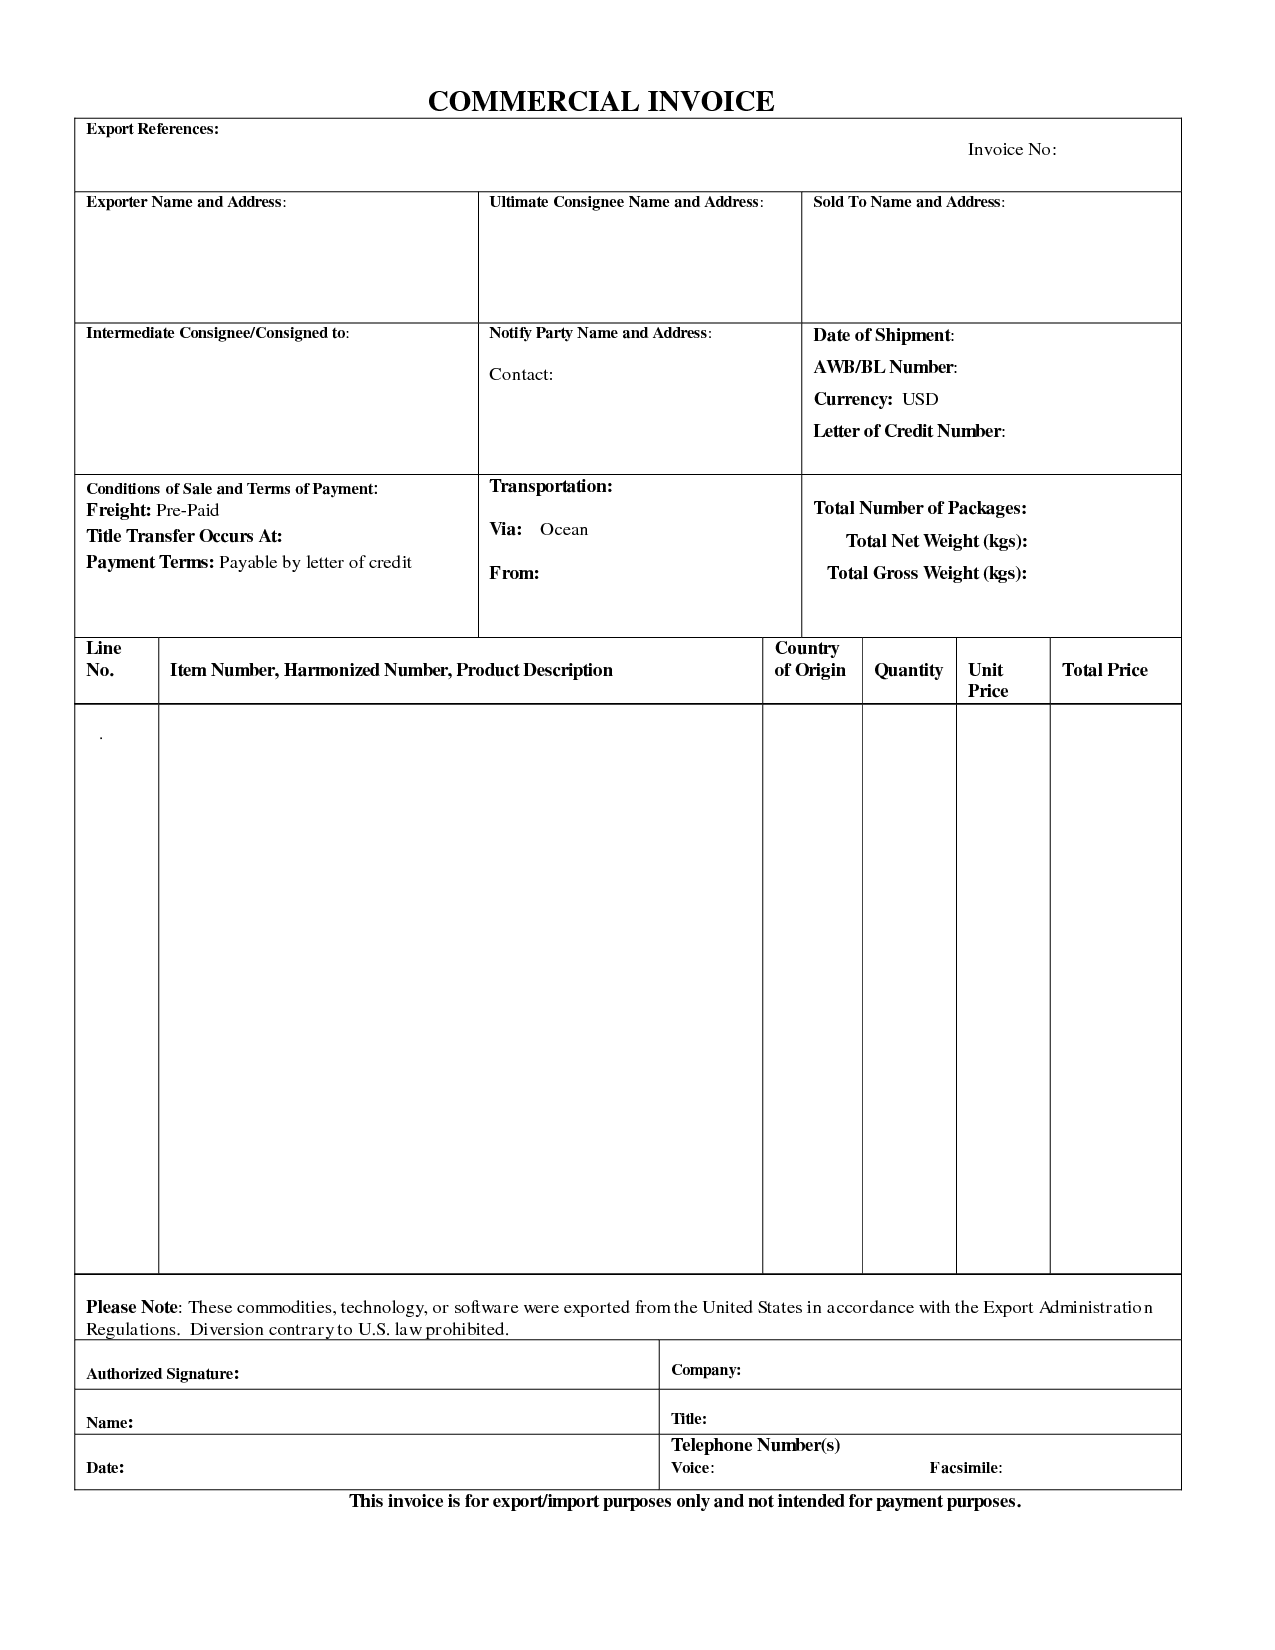 Commercial Export Invoice Sample Business Form Commercial Export - Hvac invoice template free walmart store online